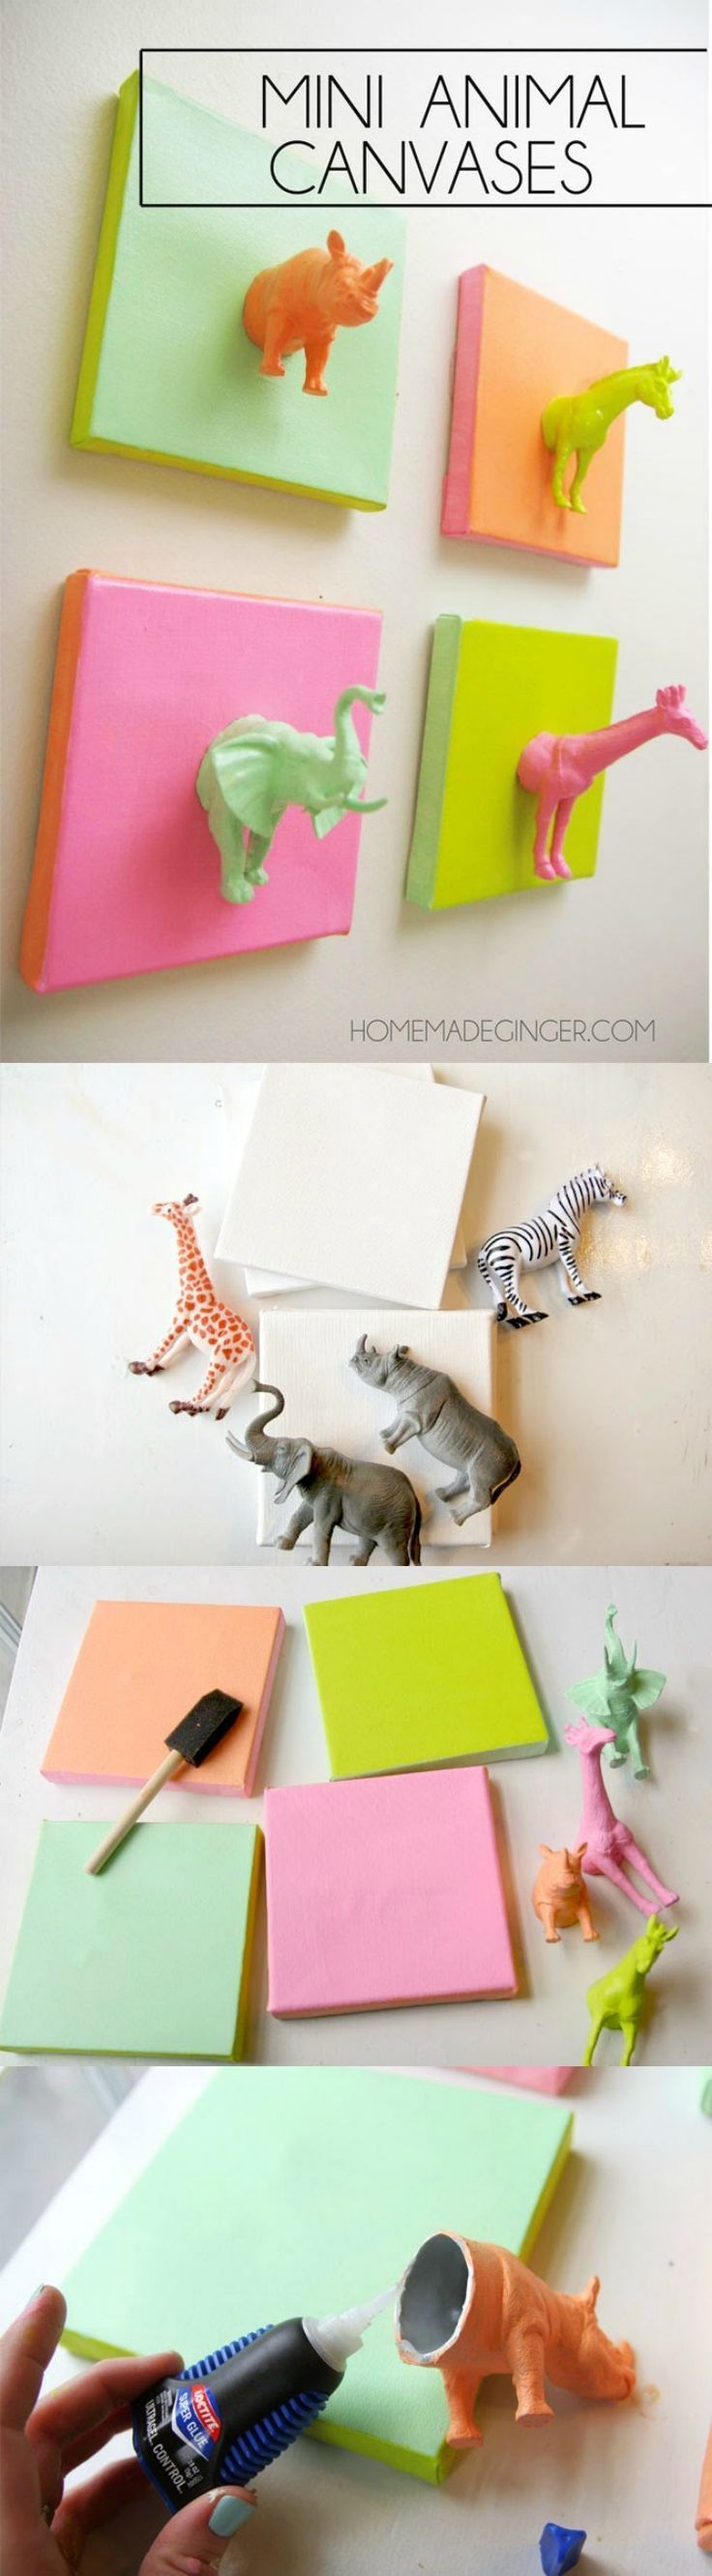 25 unique plastic animal crafts ideas on pinterest for Diy projects for toddlers room